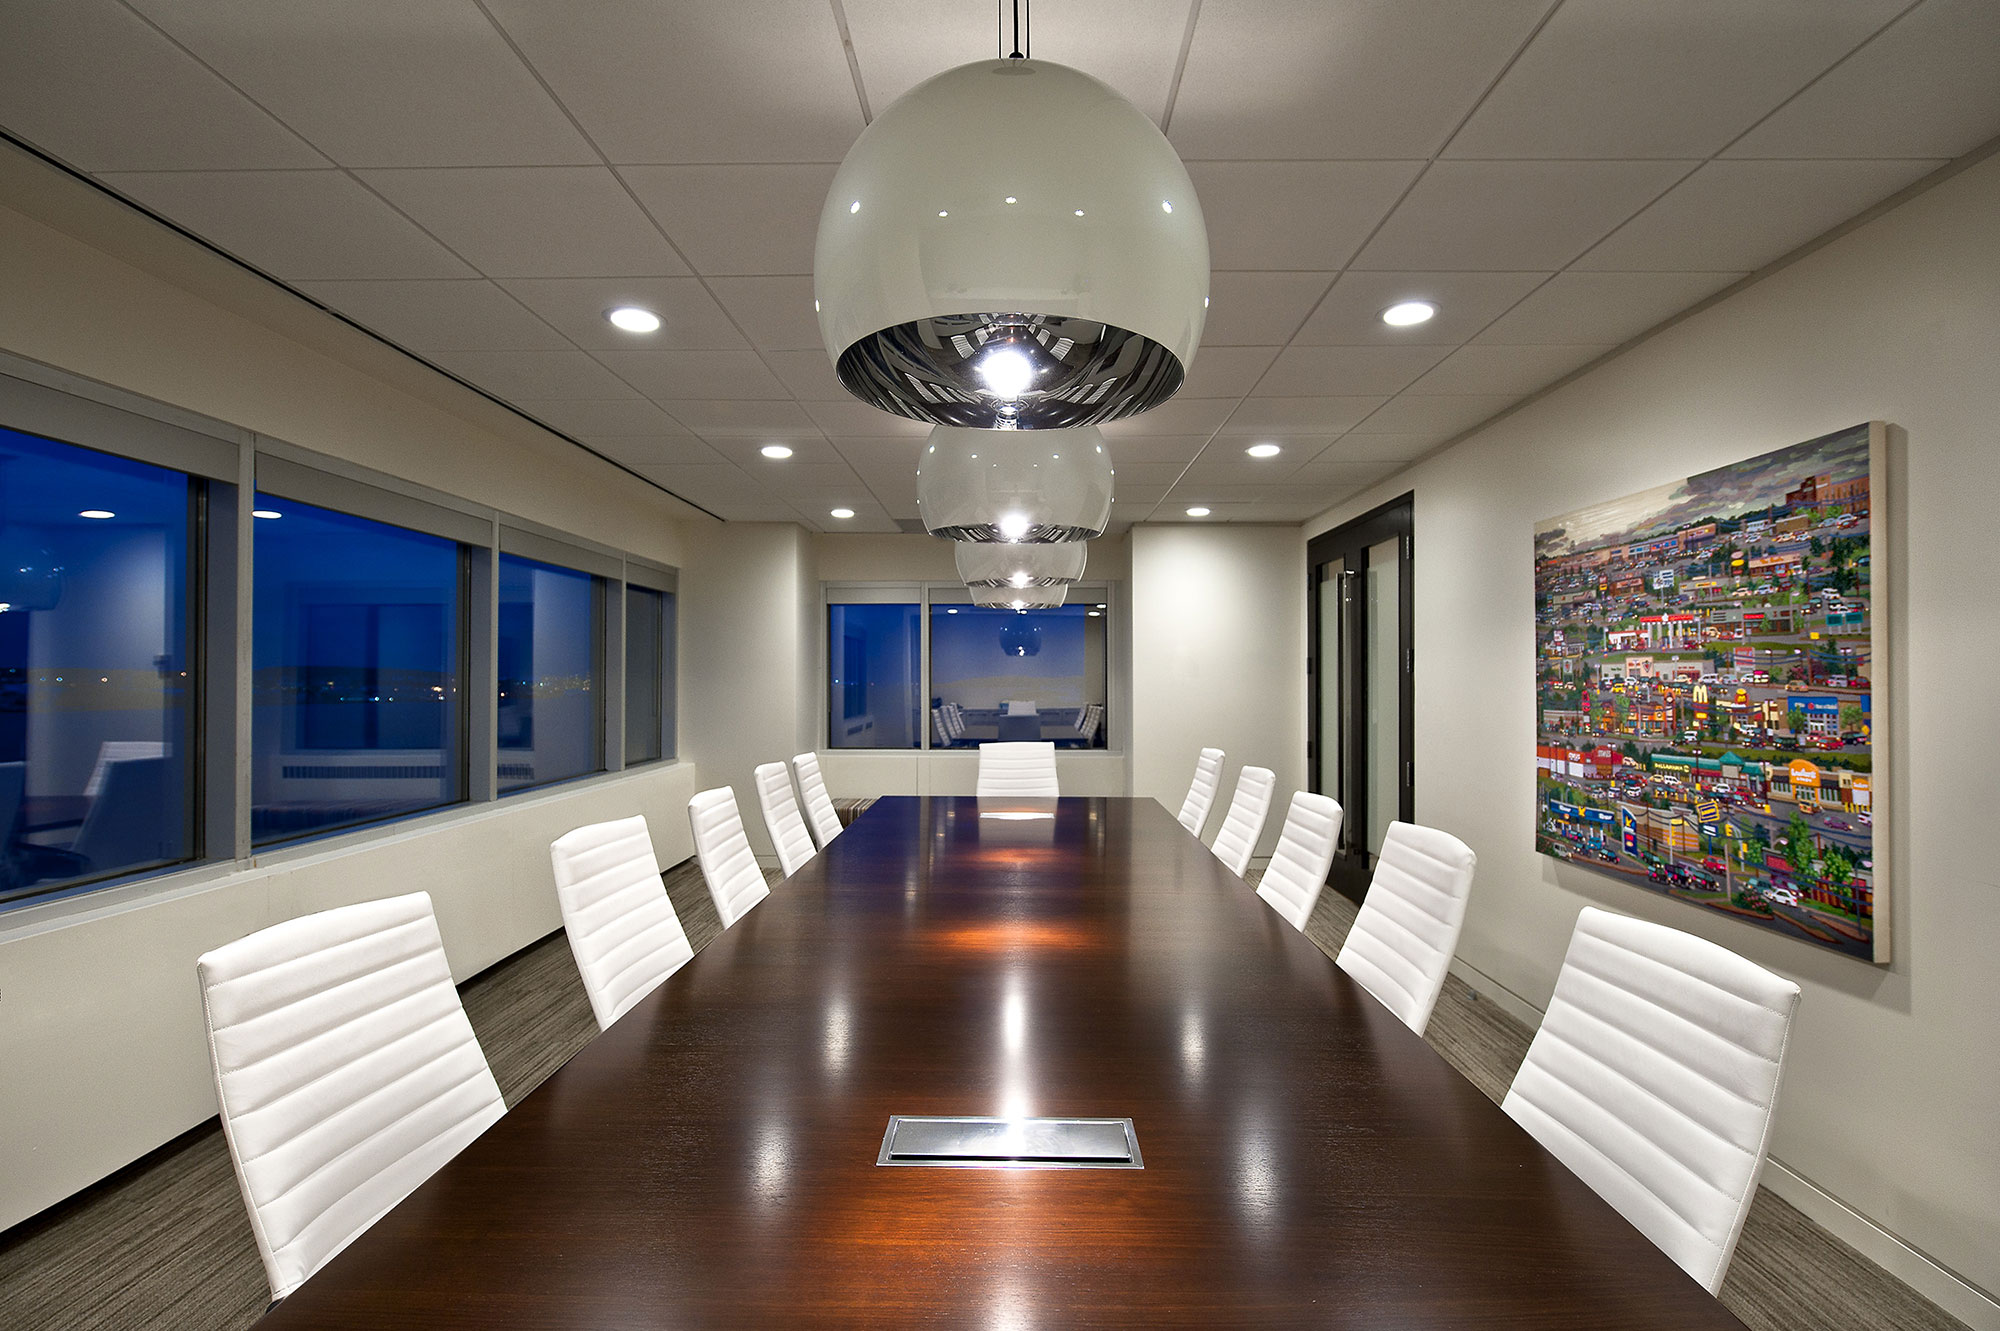 interior-design-legal-office-boardroom-table.jpg